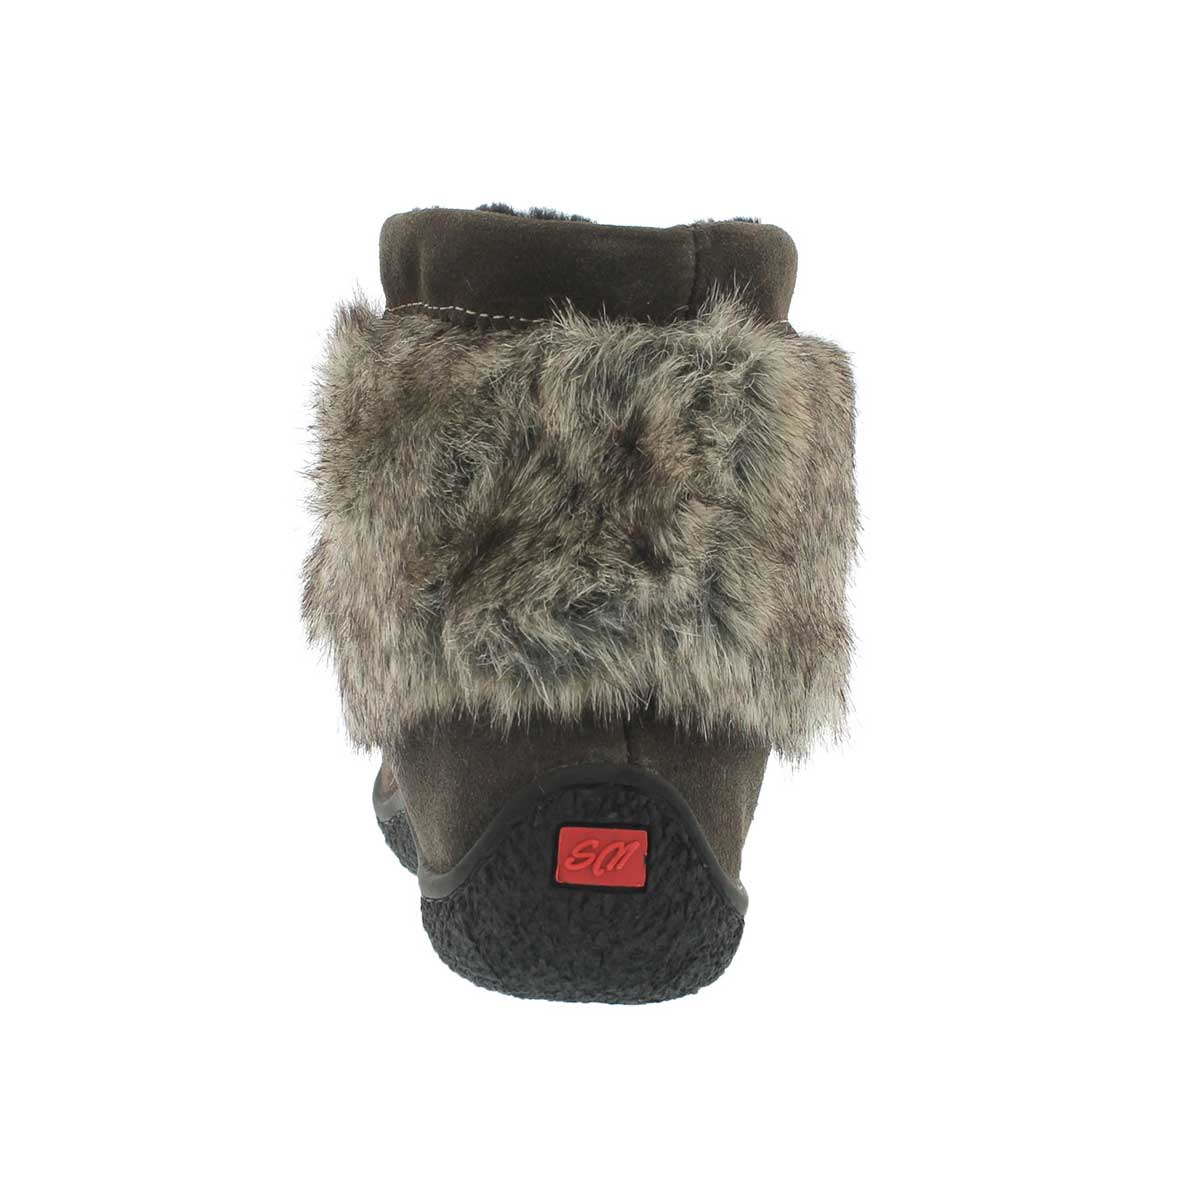 Grls 8532Minimuk gry rabbit fur mukluk